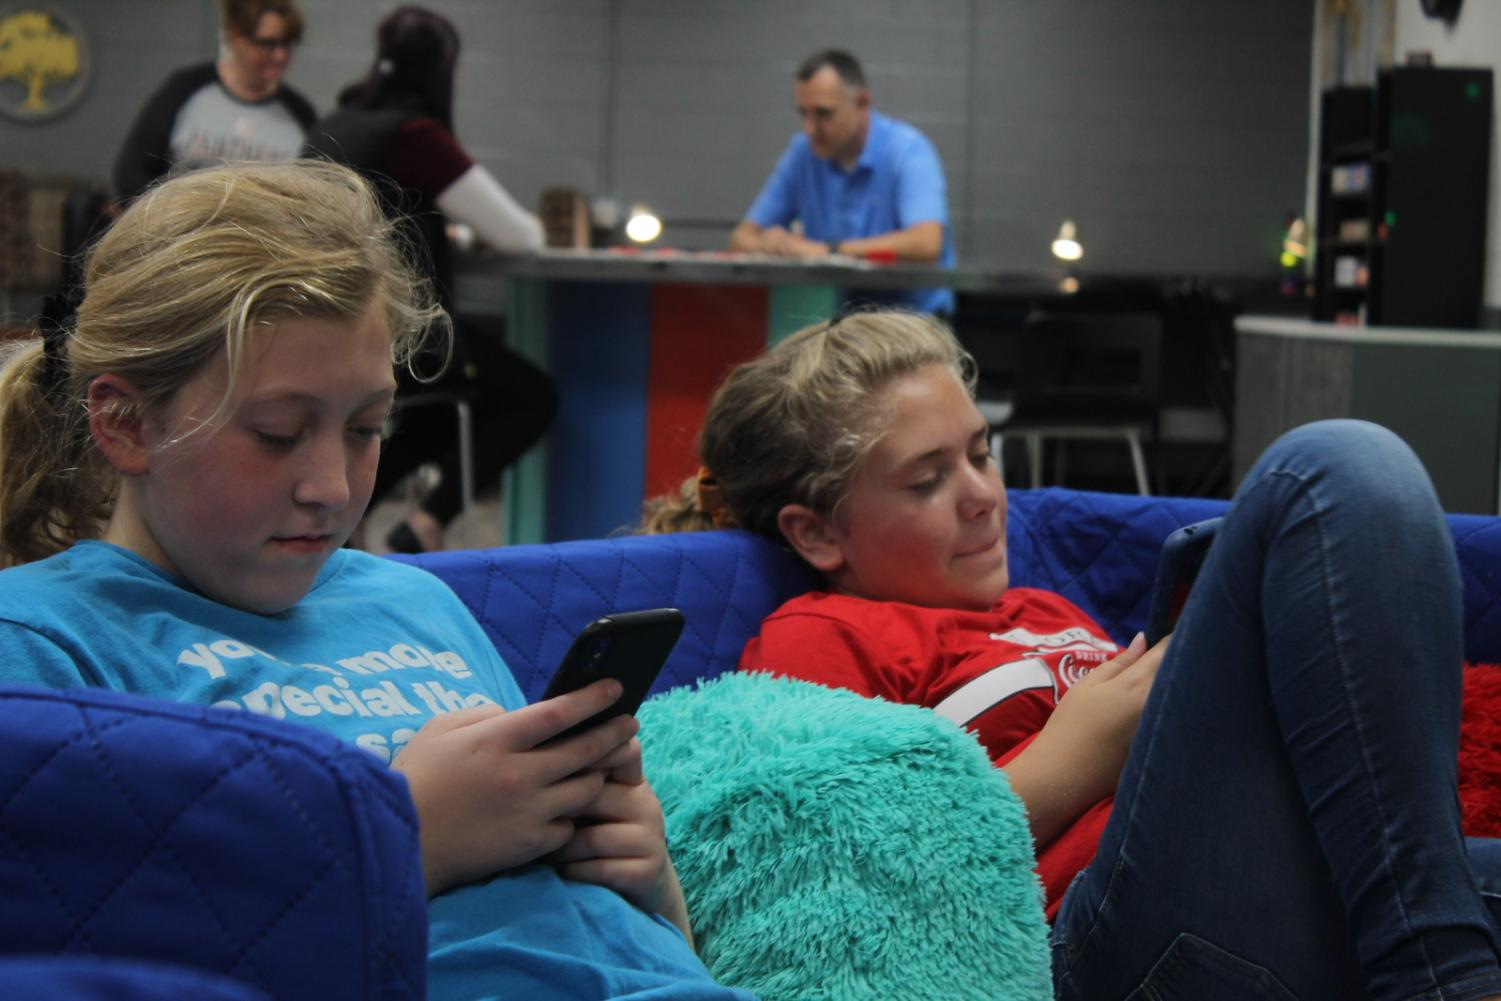 """The Teen Center is really fun. It is a really great place for homework and just relaxing,"" seventh grader Lily DuWig said. With her friend Jessica Sparks, DuWig attended the open house. Relaxing on the couch and being able to chill highlights the perks of the Teen Center."